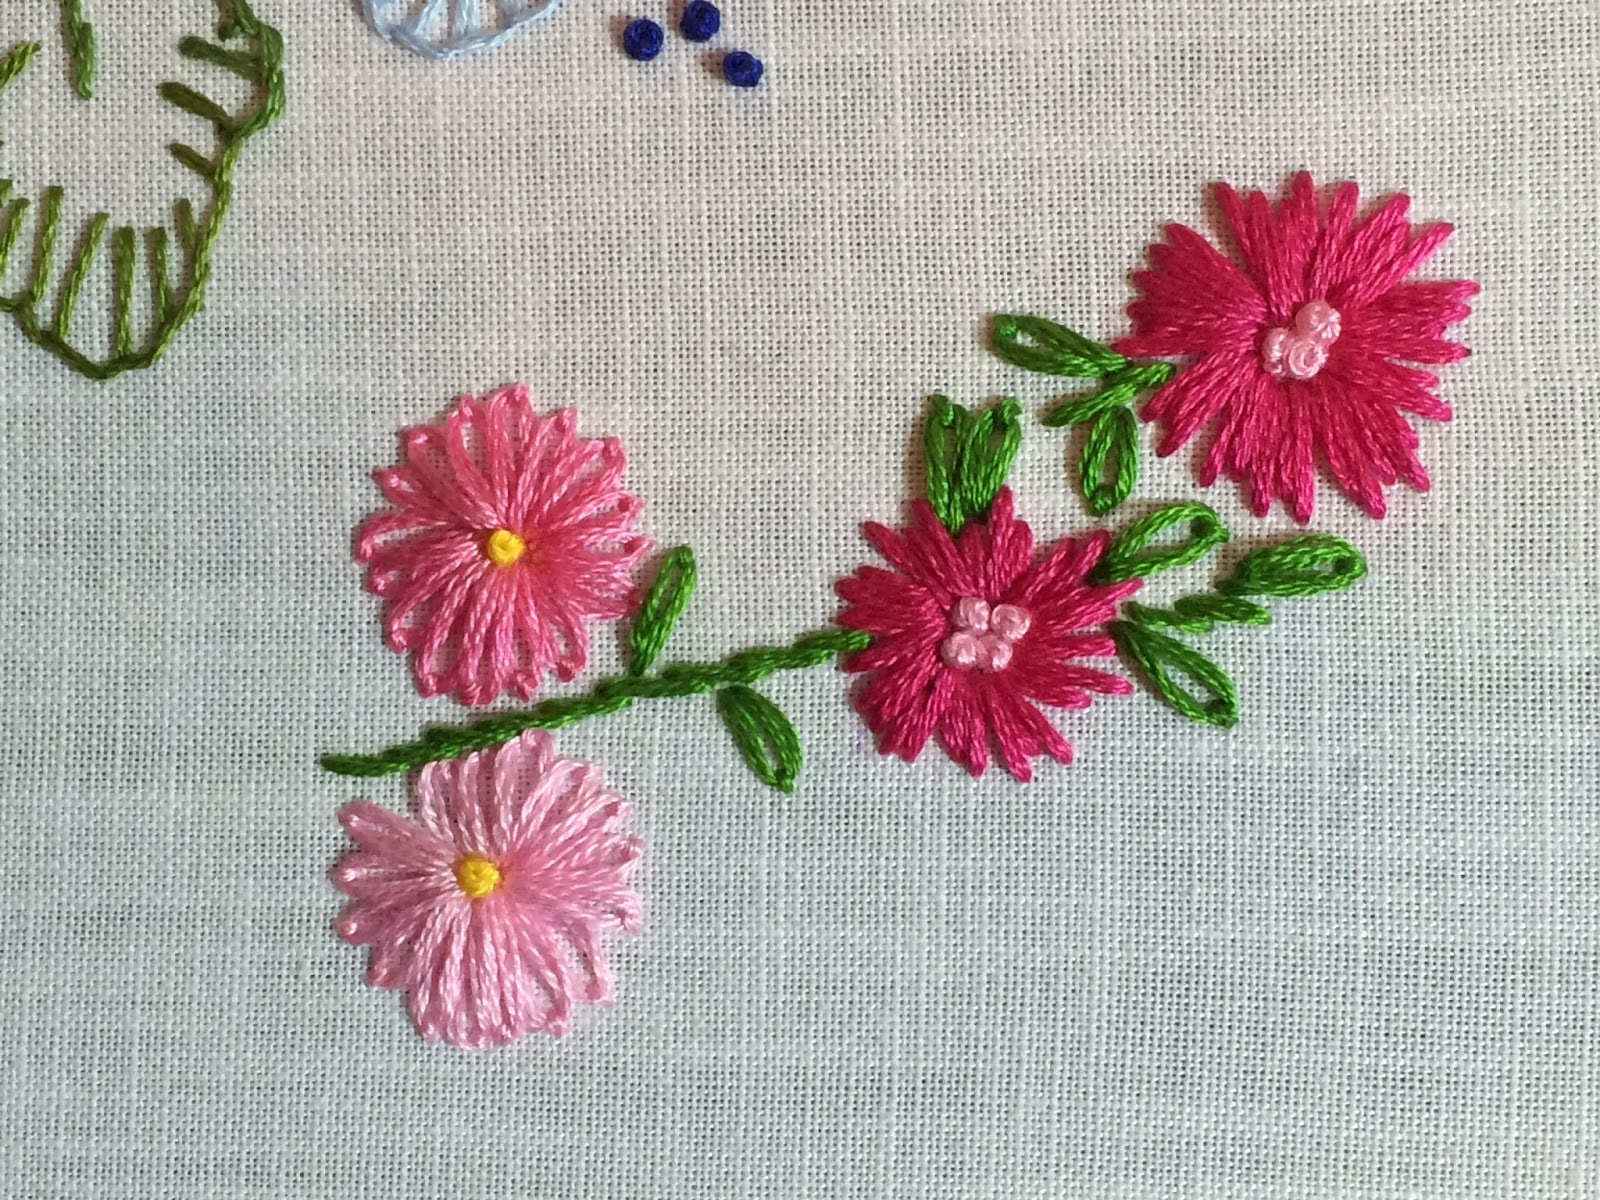 Mooshiestitch lazy daisy stitch flowers